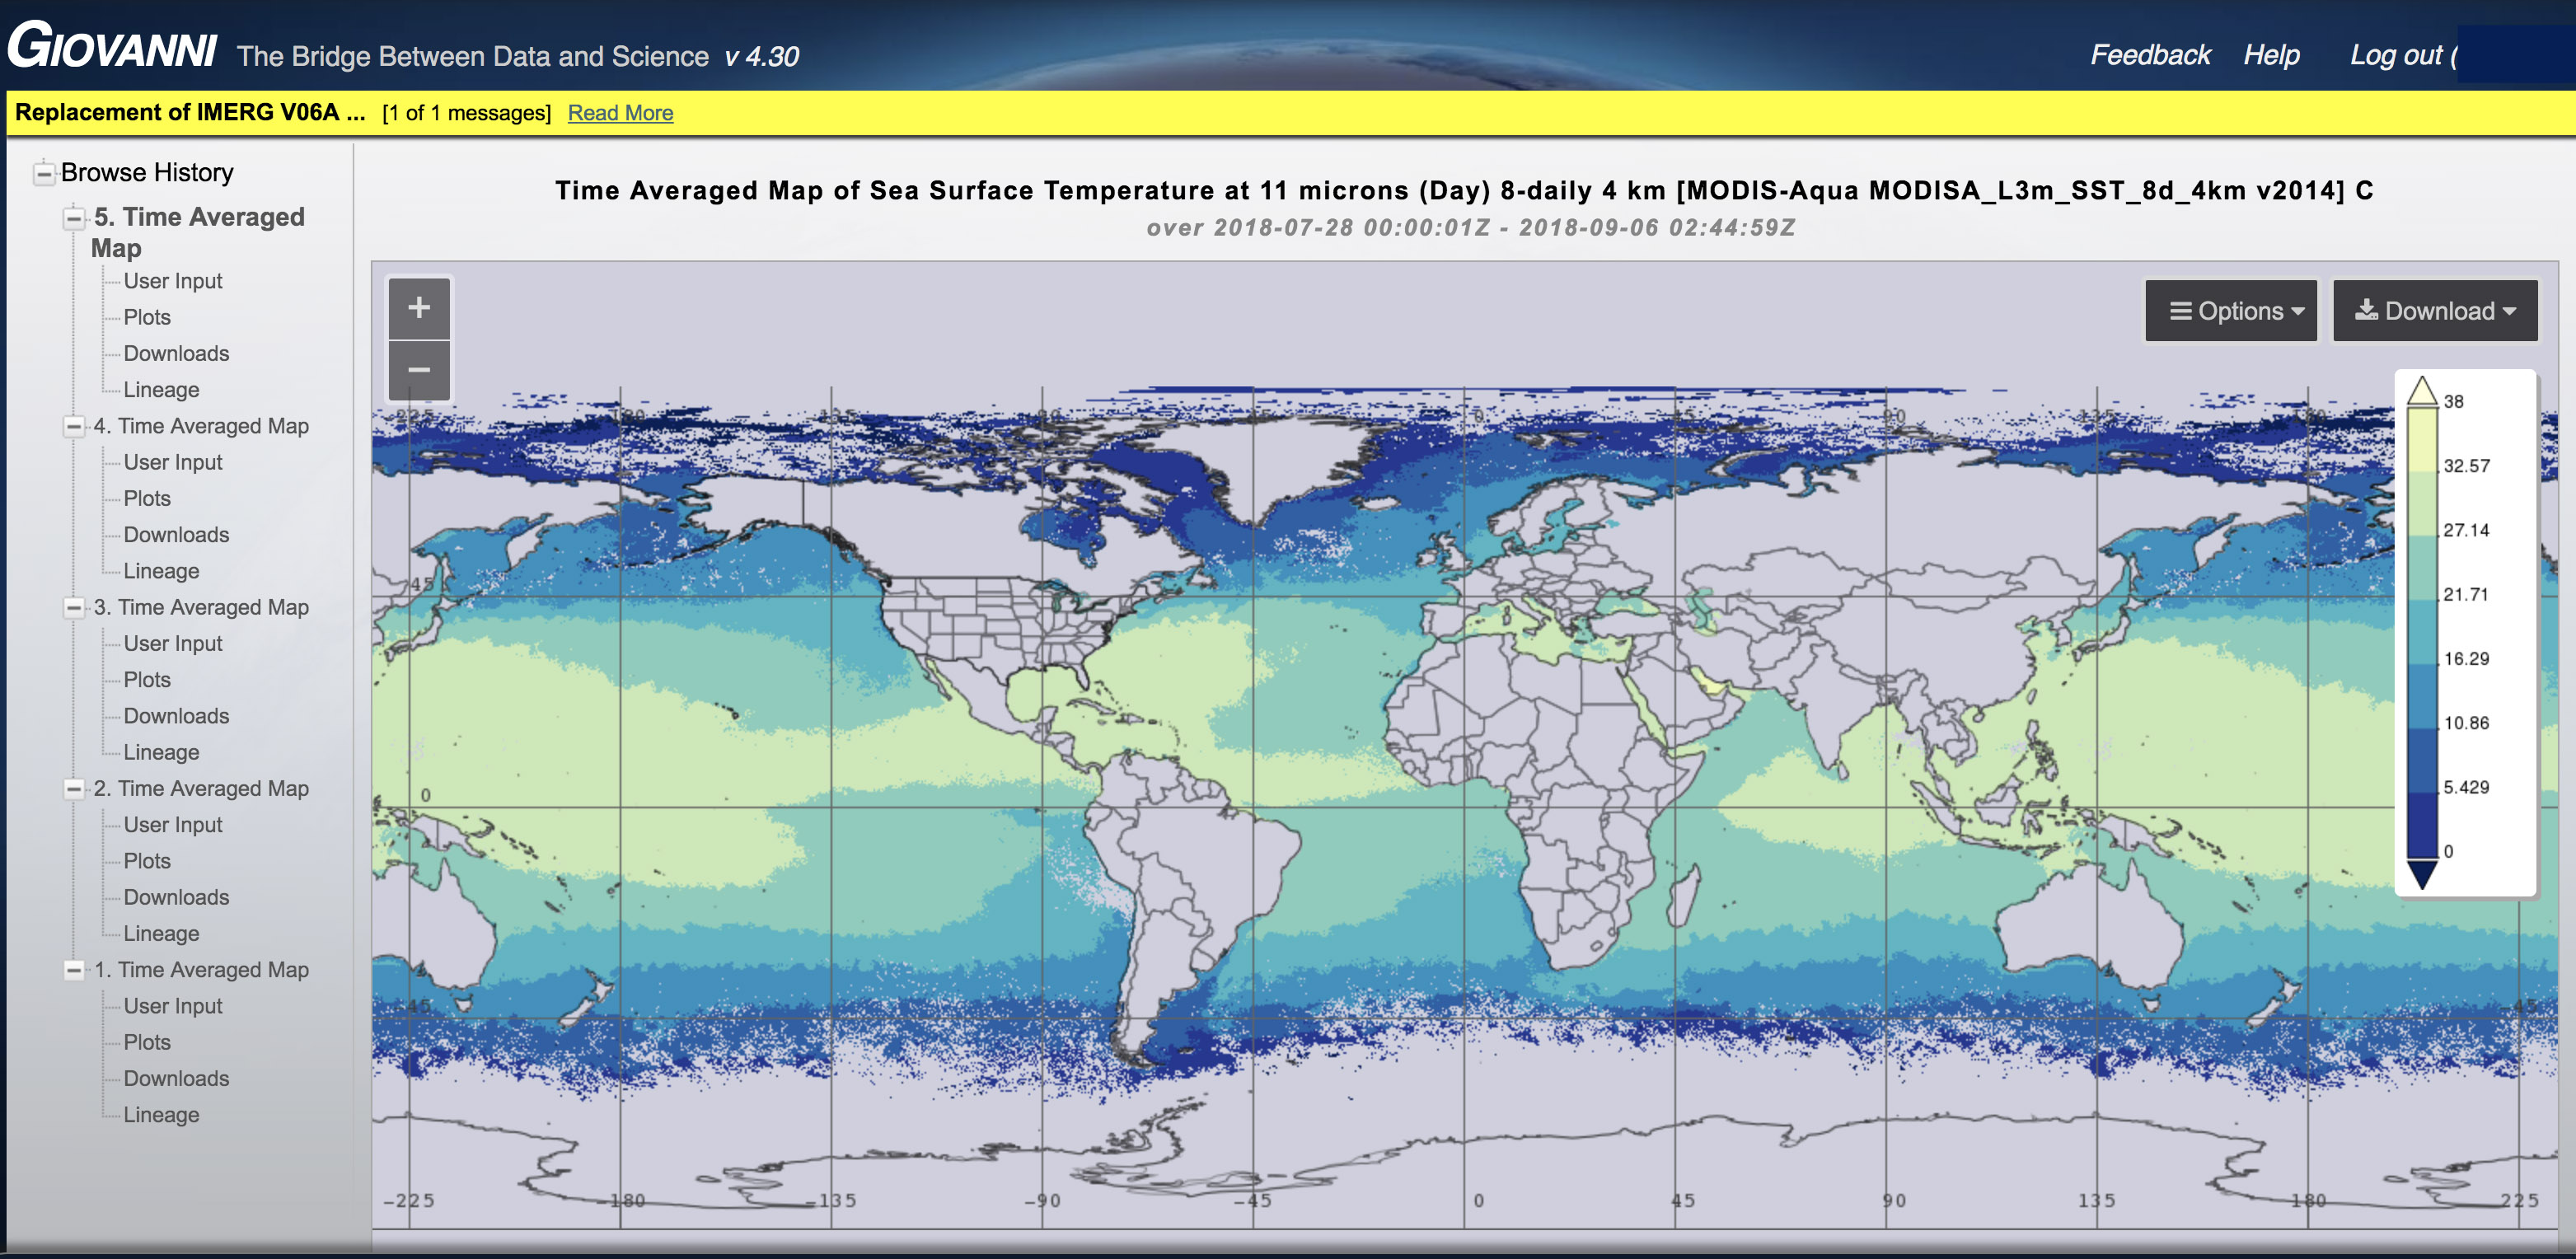 Screenshot of Giovanni showing time averaged sea surface temperature at 4km resolution.